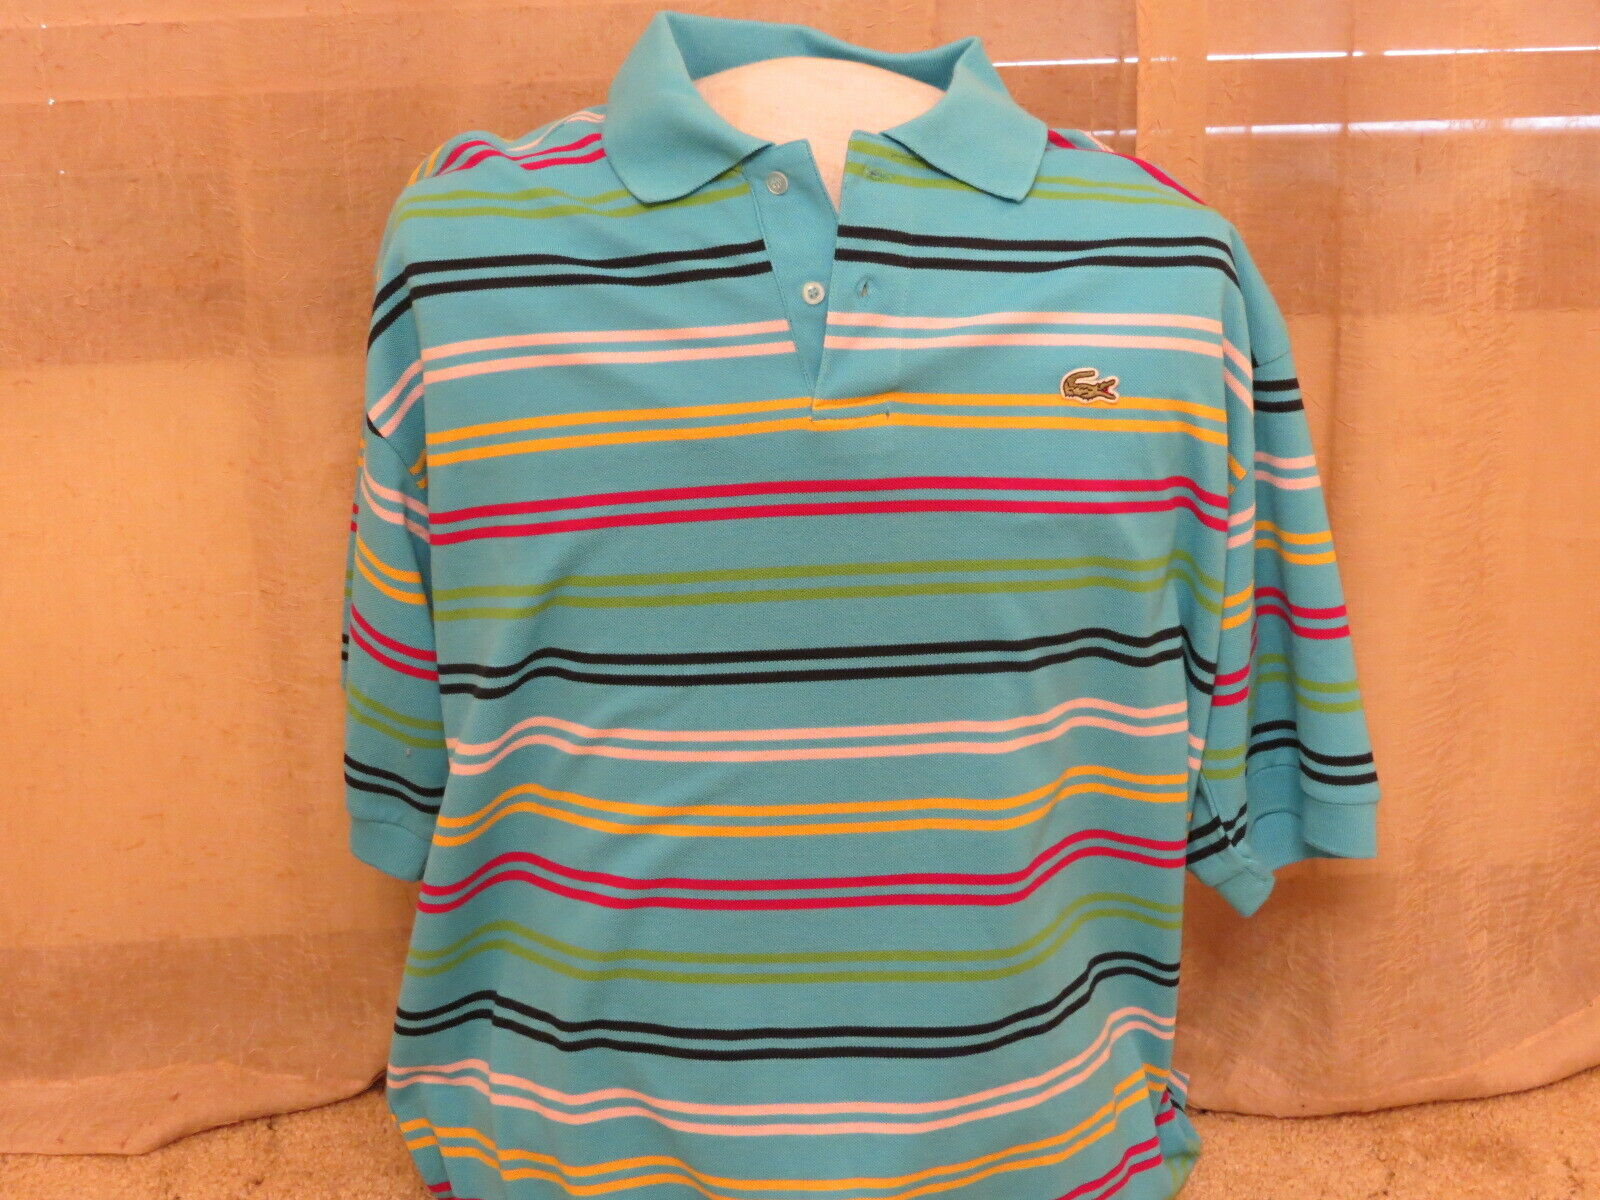 Lacoste Sports Men's Polo, Size 8 - 2XL, bluee w  Stripes,